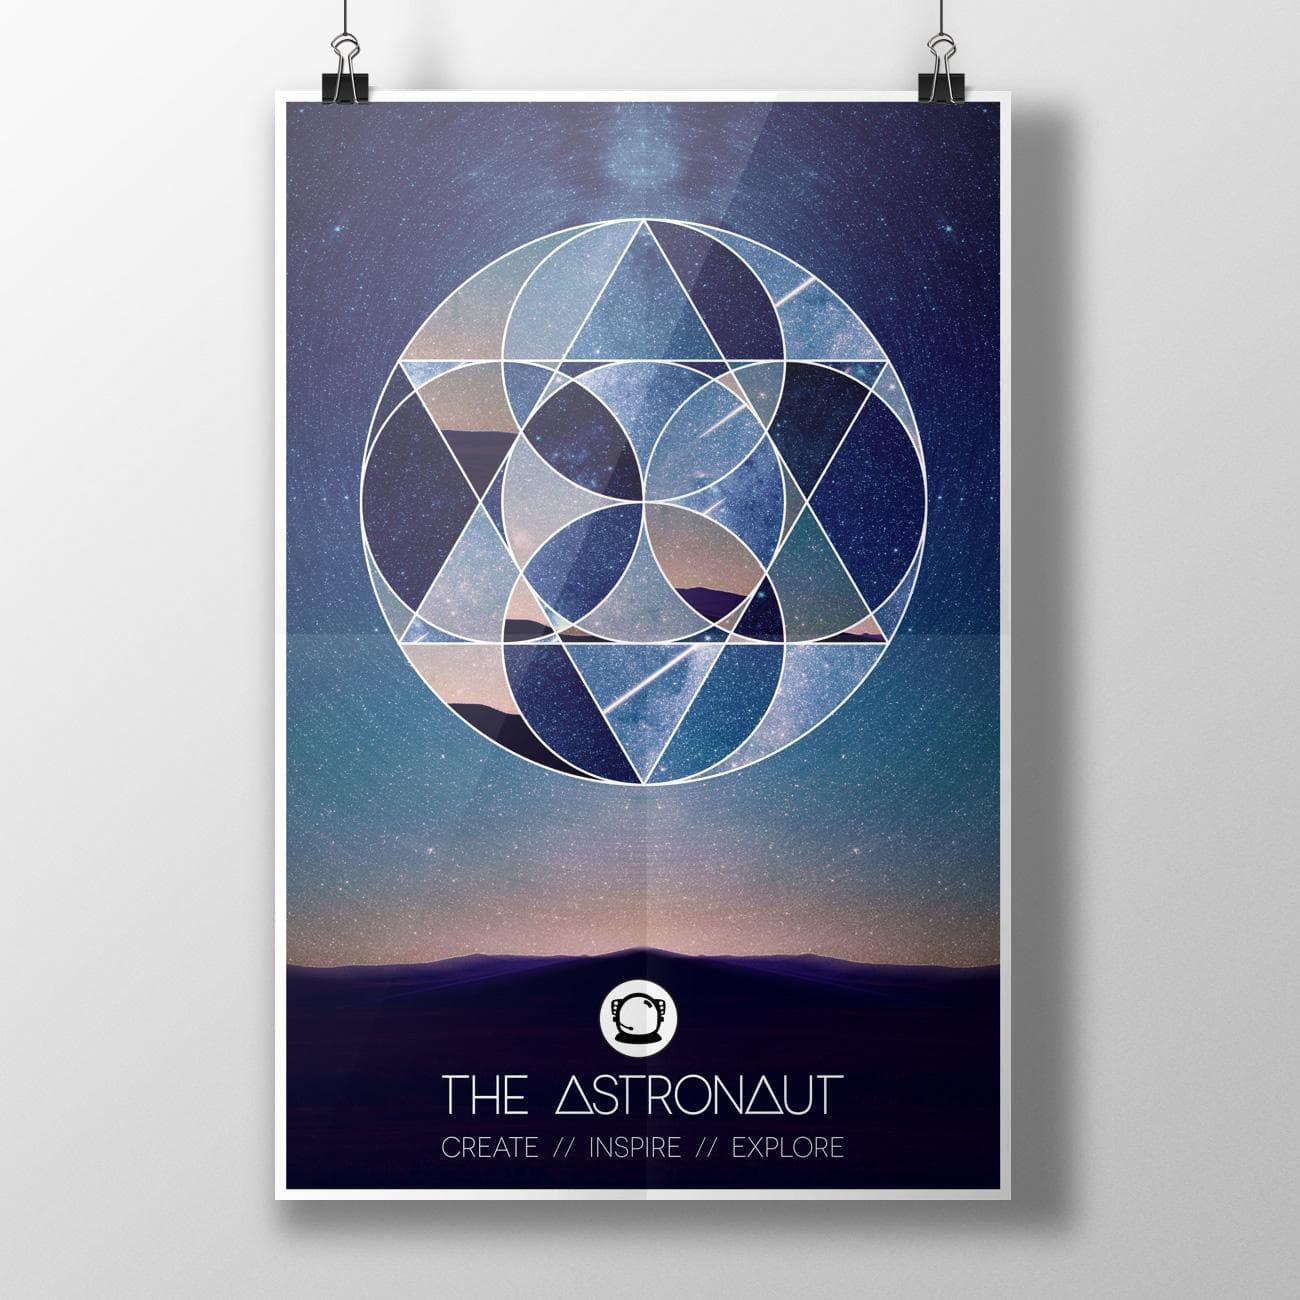 A poster mockup of the final geometric design